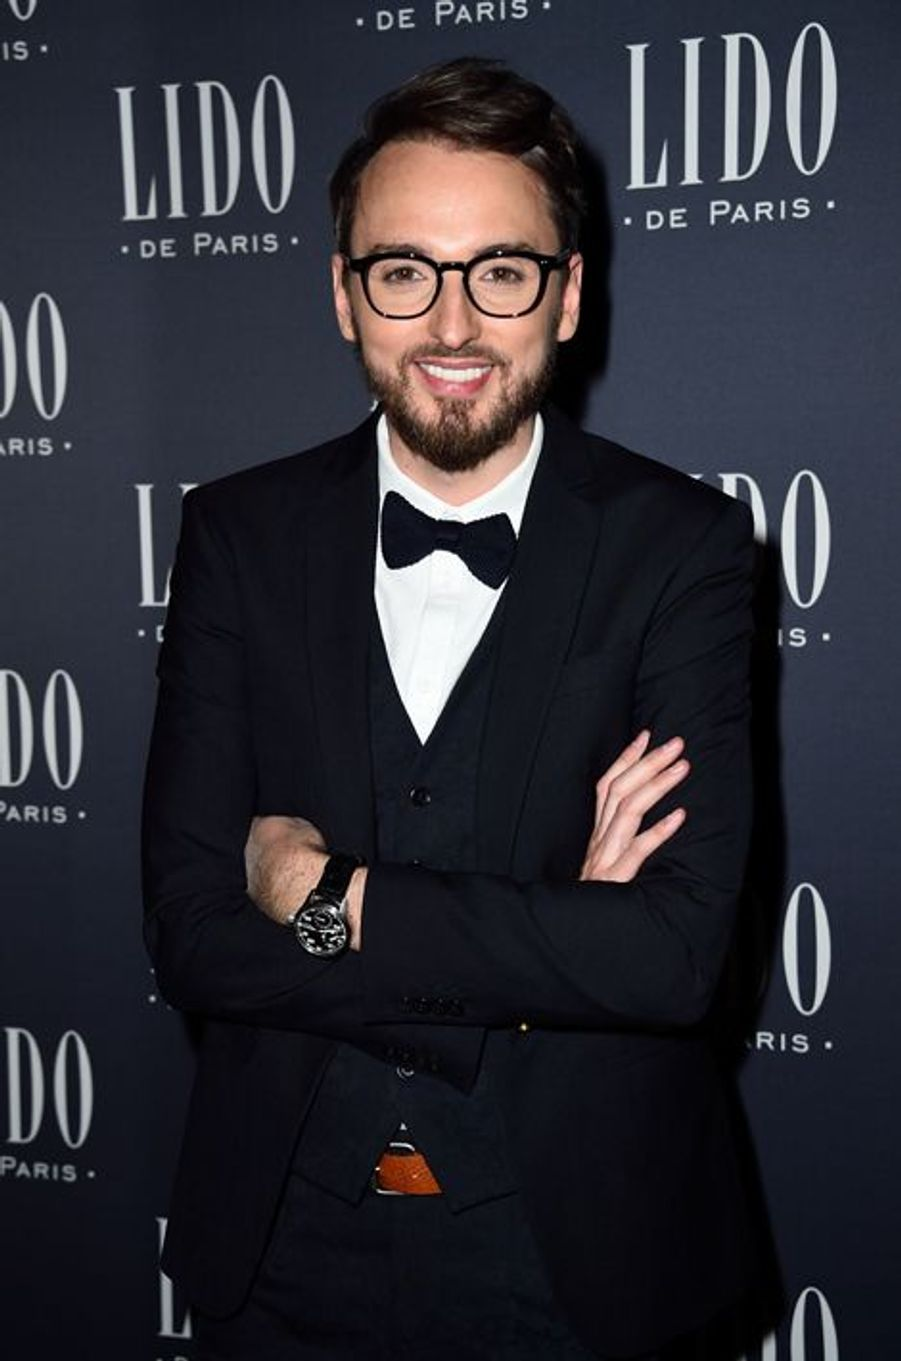 Christophe Willem à Paris le 8 avril 2015